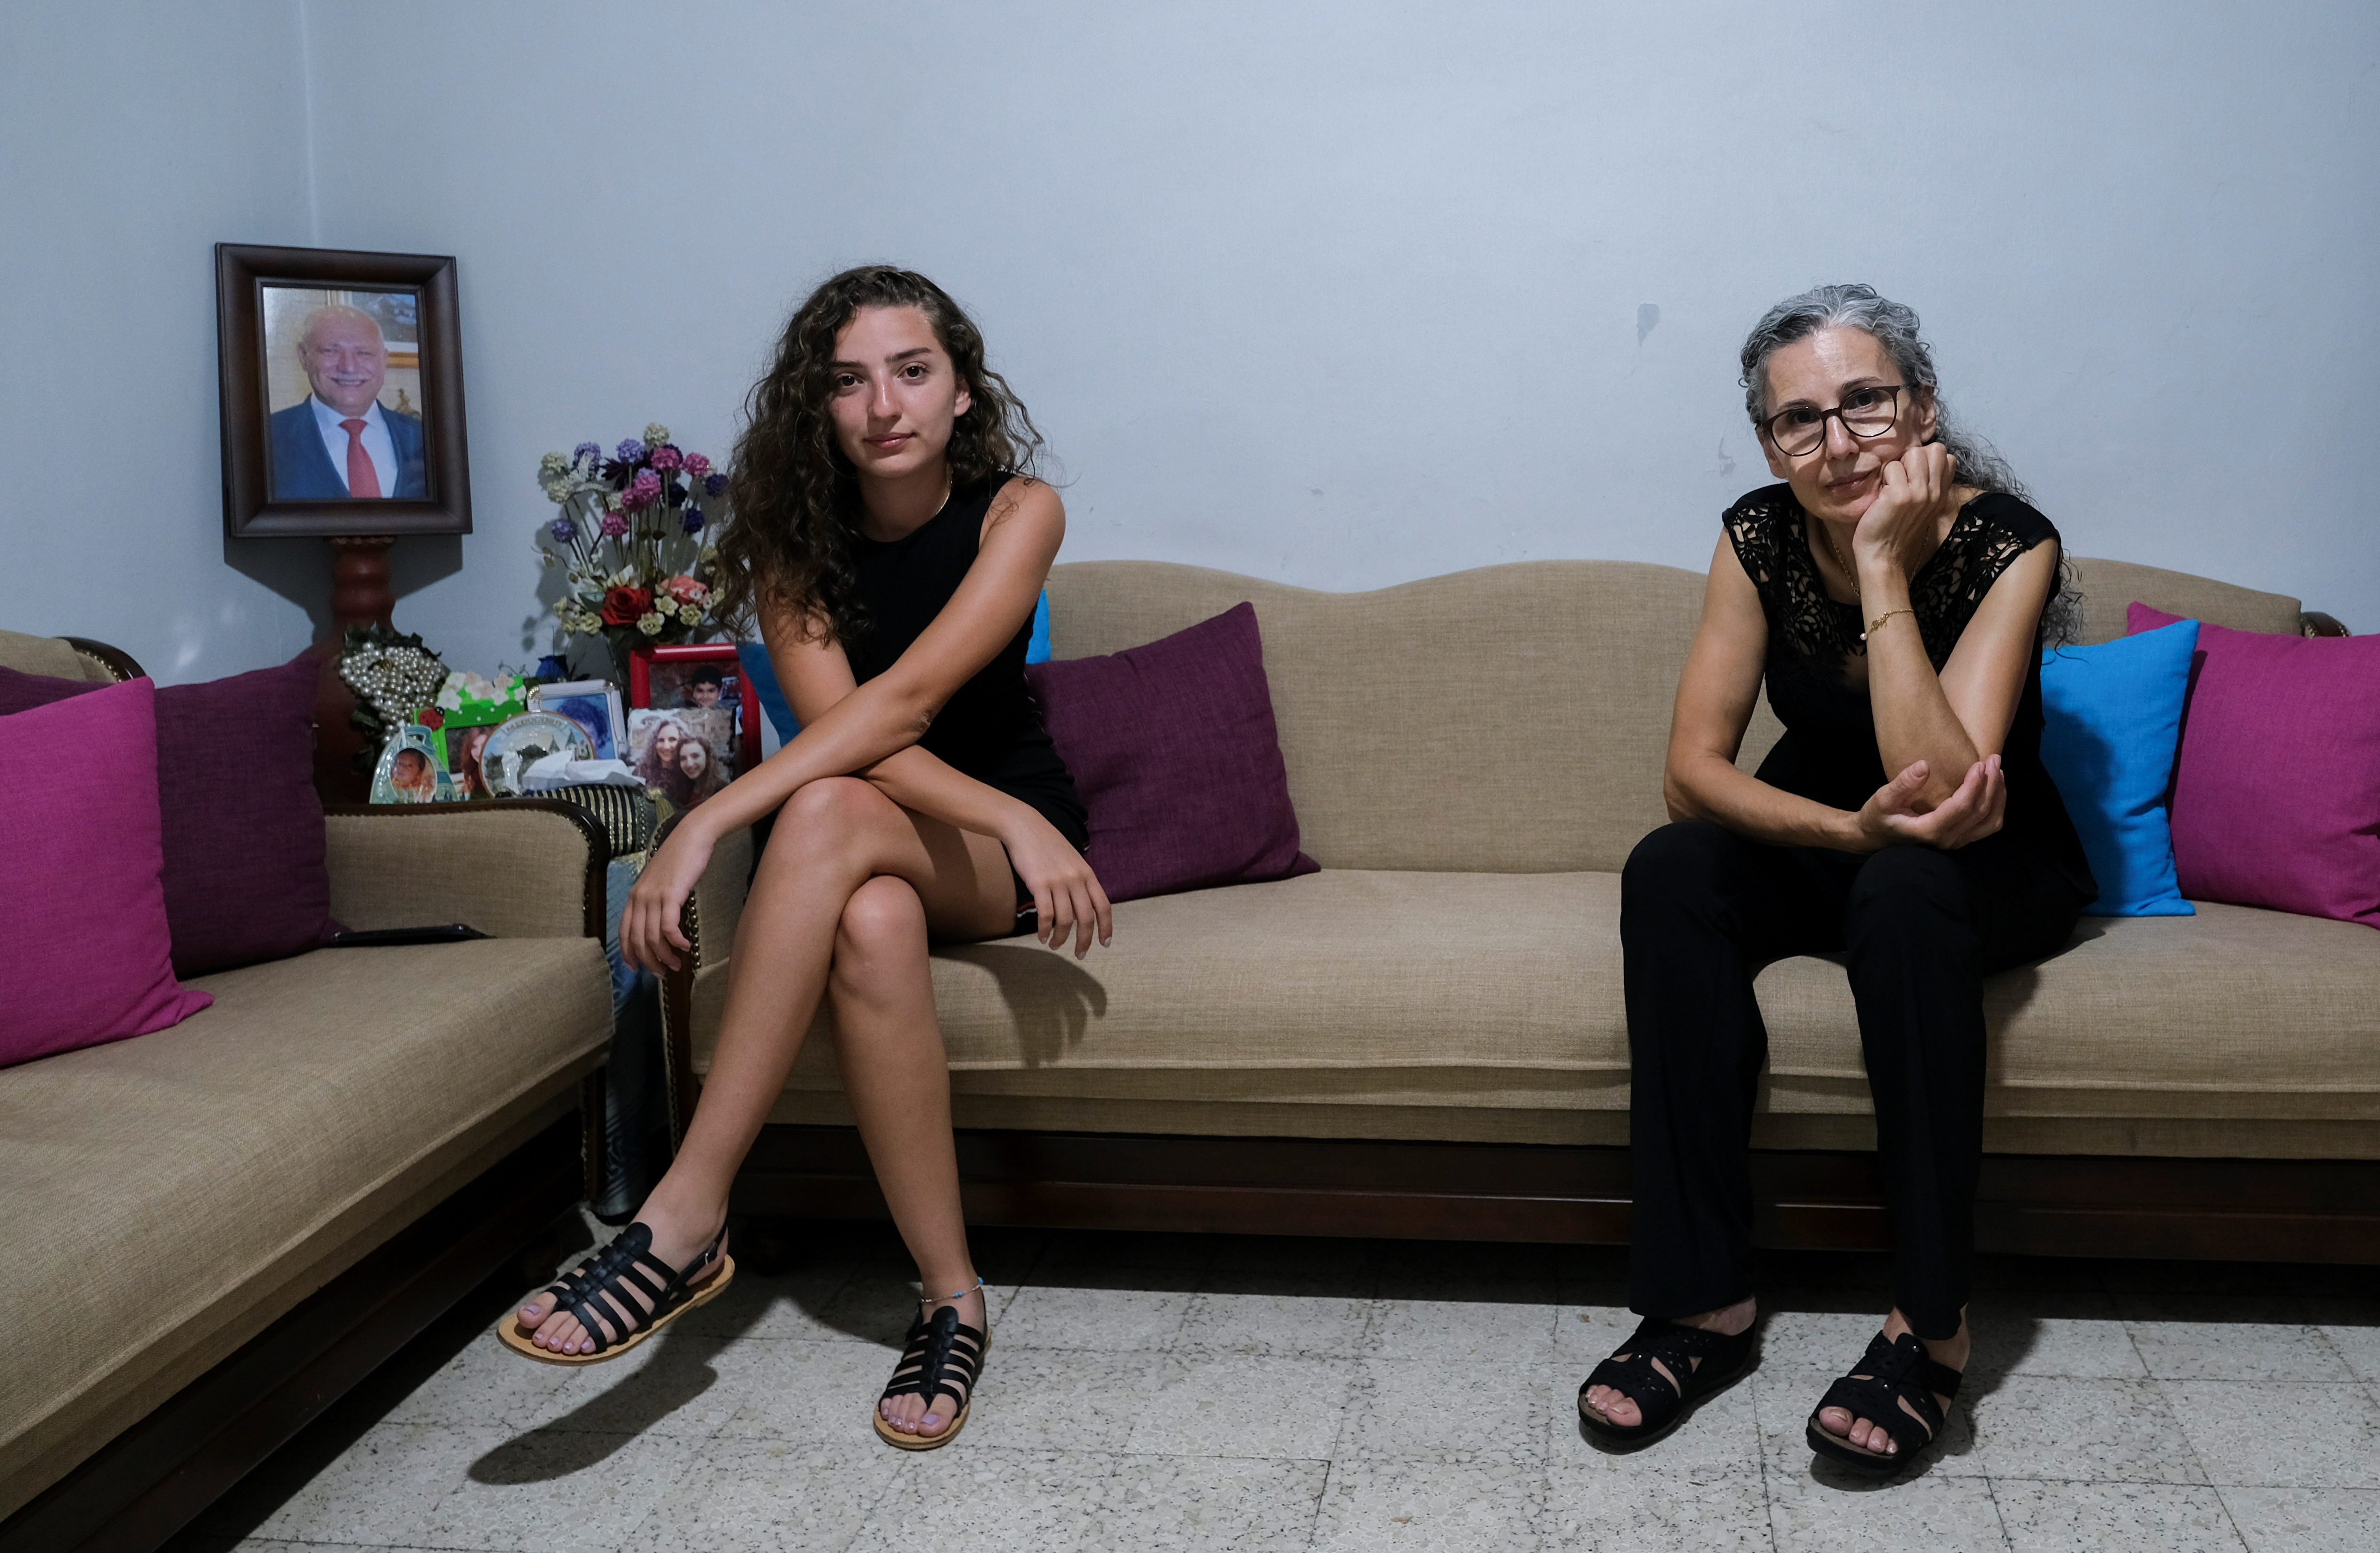 Tatiana Hasrouty, whose father was killed in the August 4 explosion at Beirut port, poses with her mother Ibtissam in her family home in Sin El Fil, Lebanon July 19, 2021.